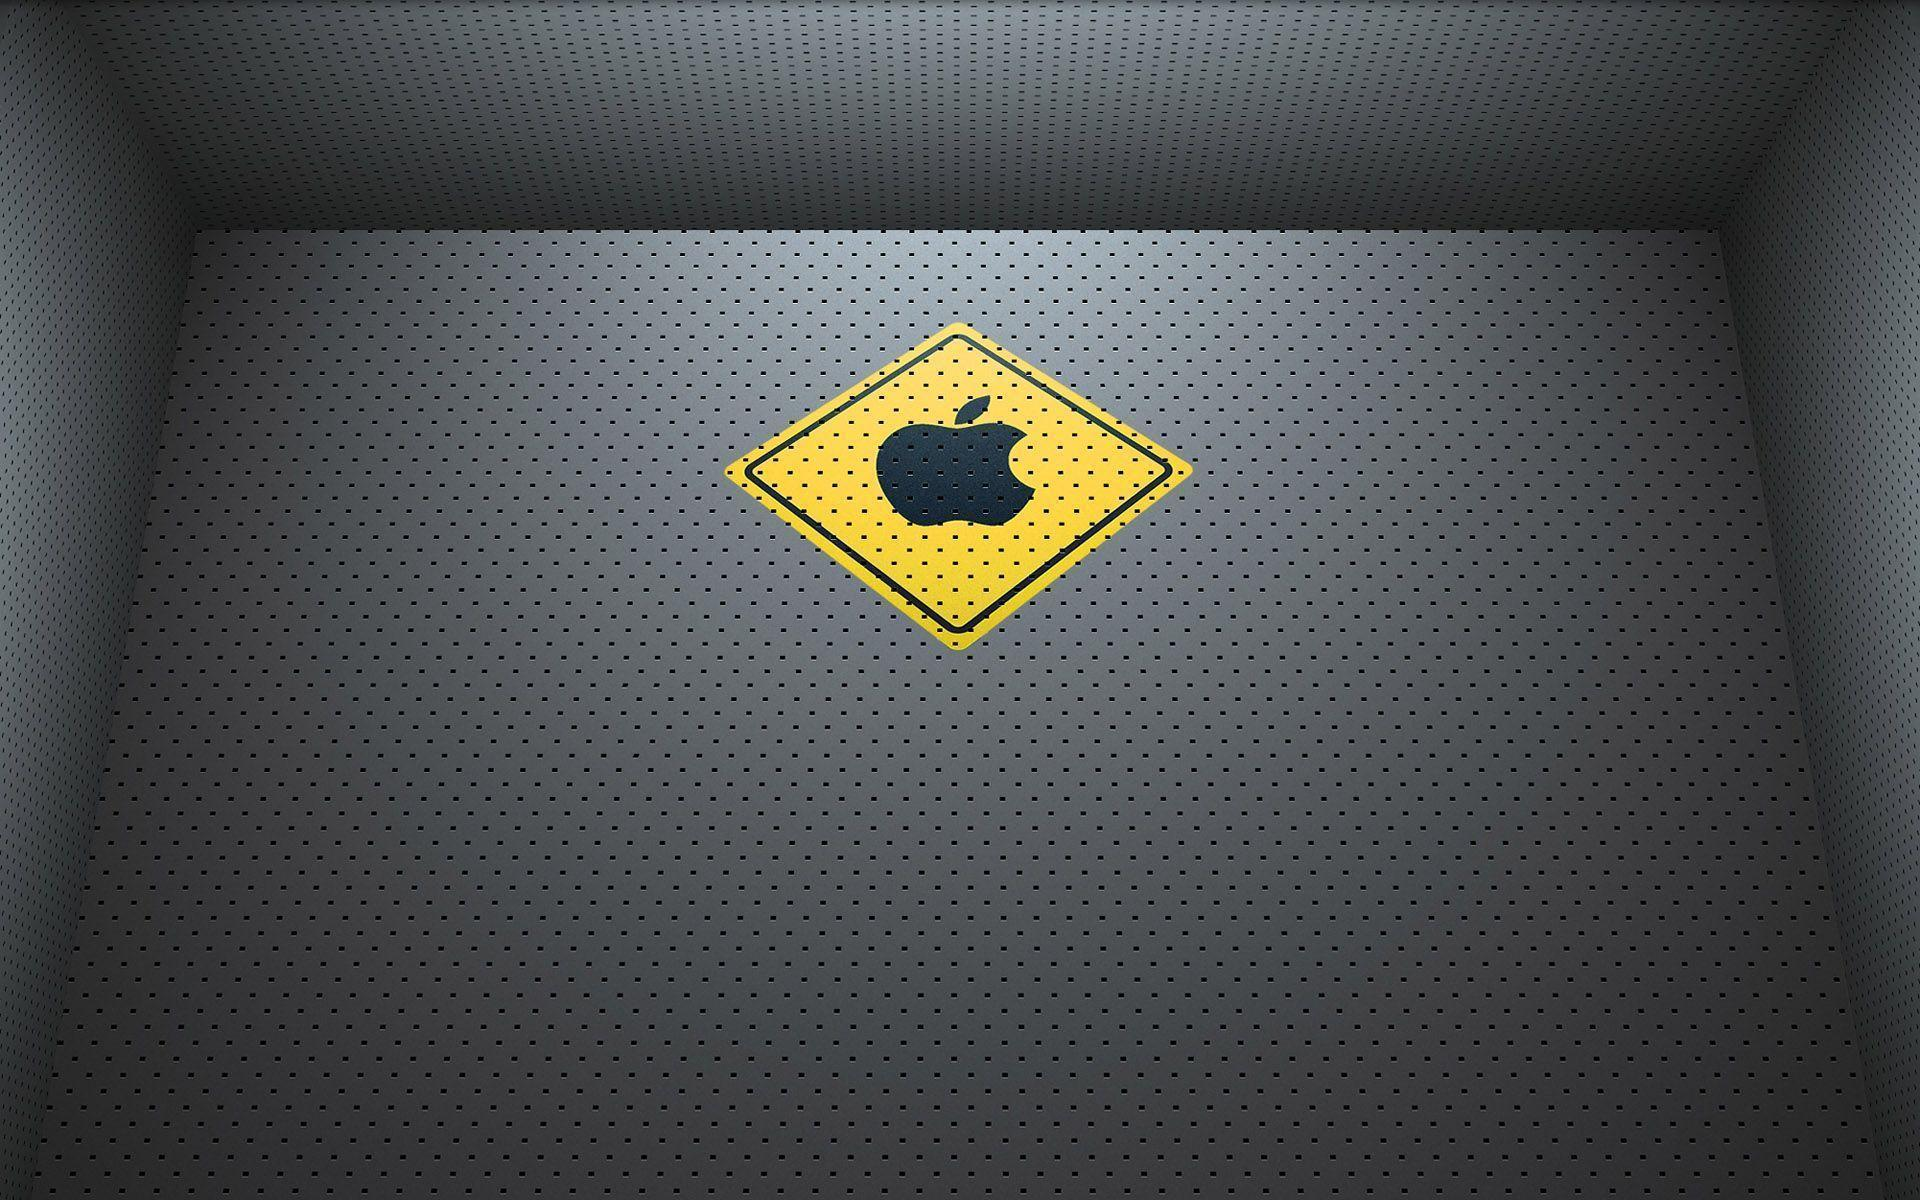 apple HD logo